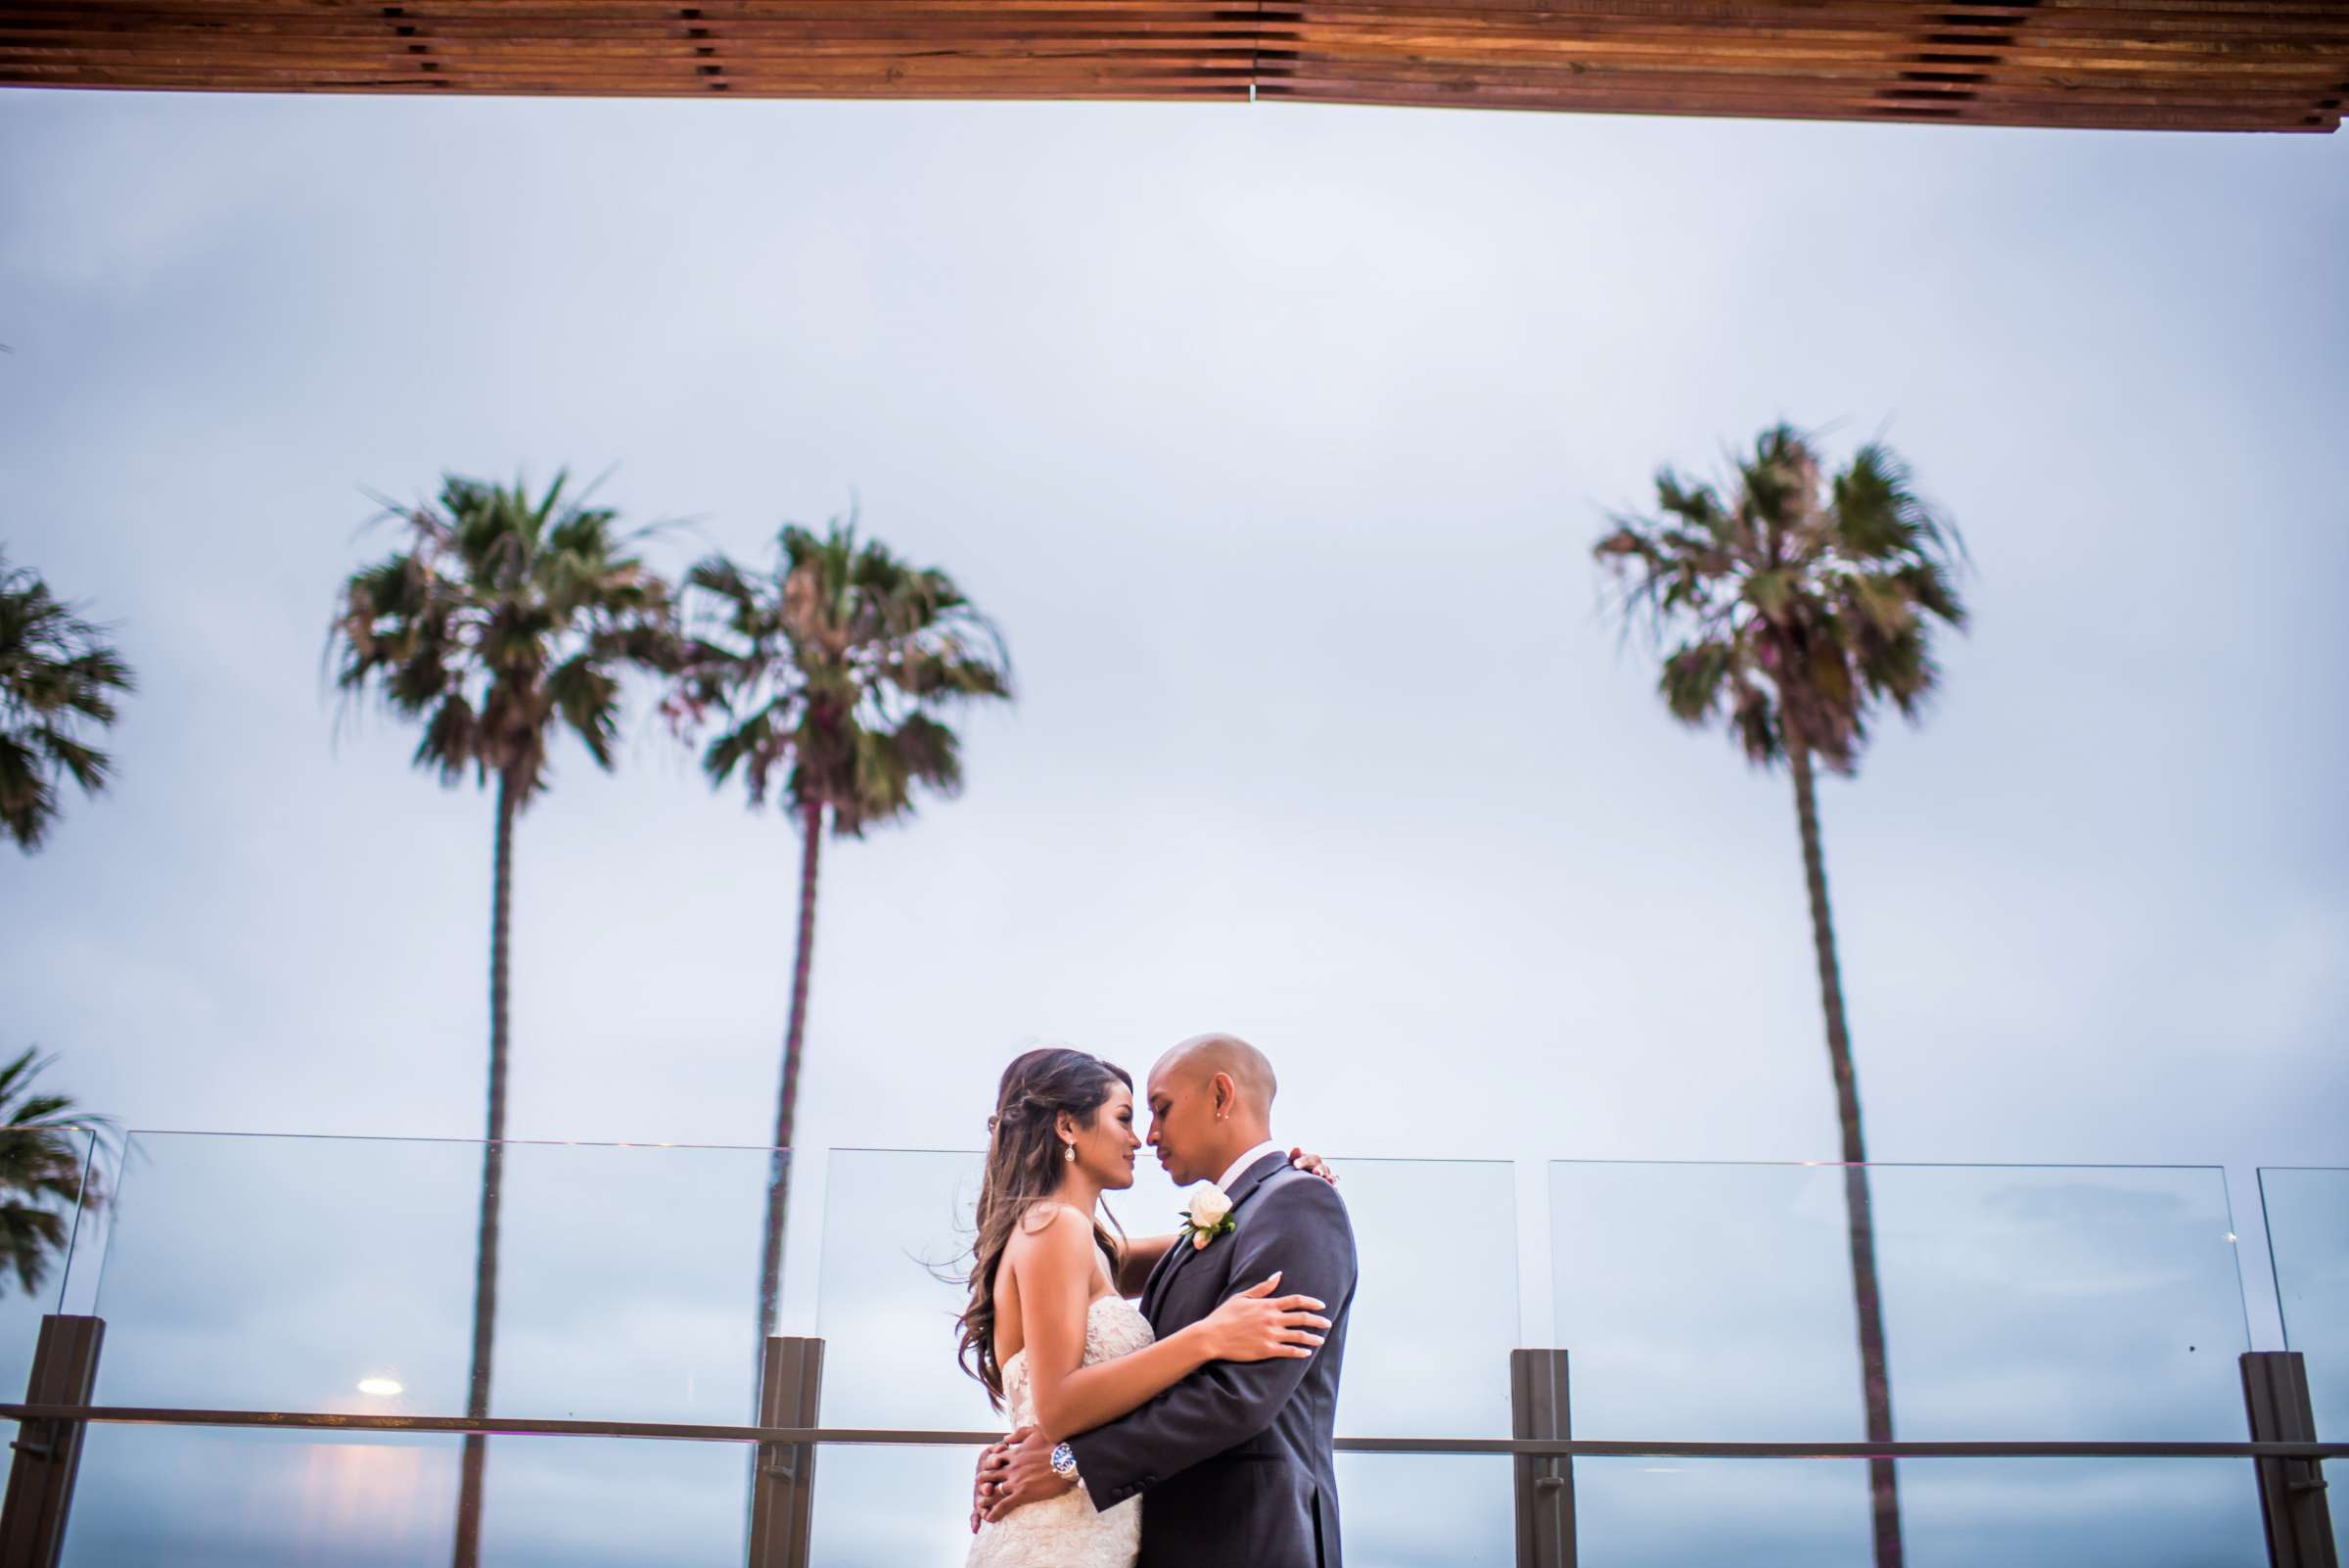 Scripps Seaside Forum Wedding coordinated by Lavish Weddings, Cindy and Justin Wedding Photo #381874 by True Photography